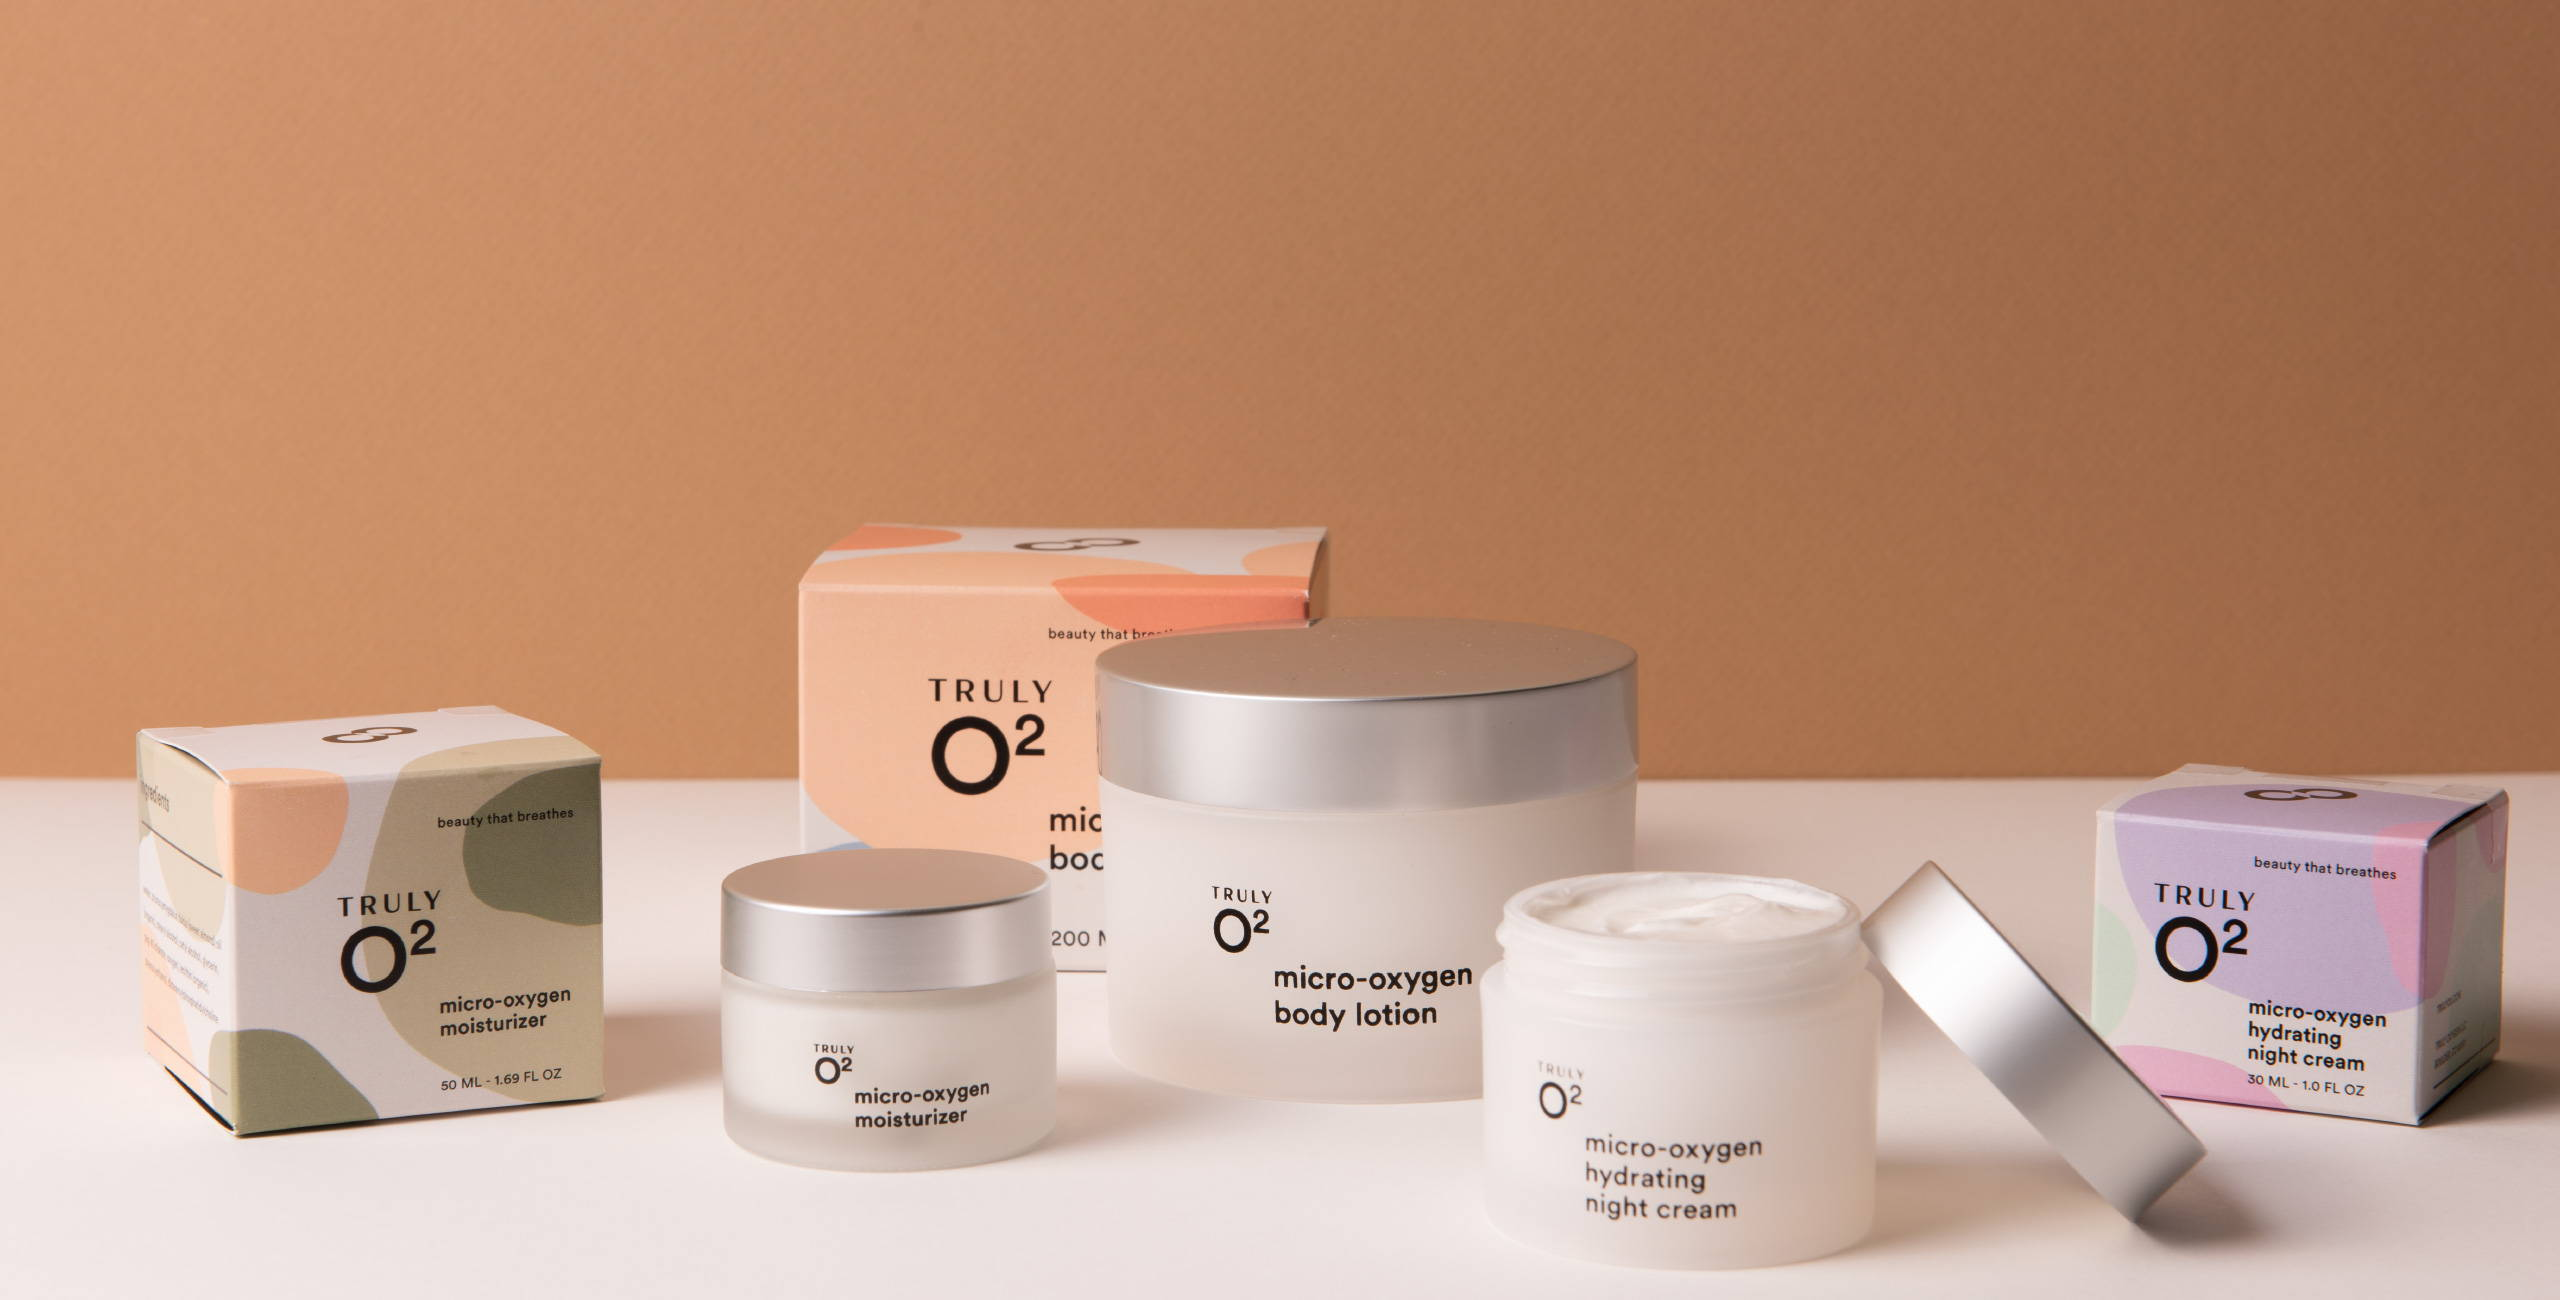 Truly O2 micro oxygen moisturizer product line vertical